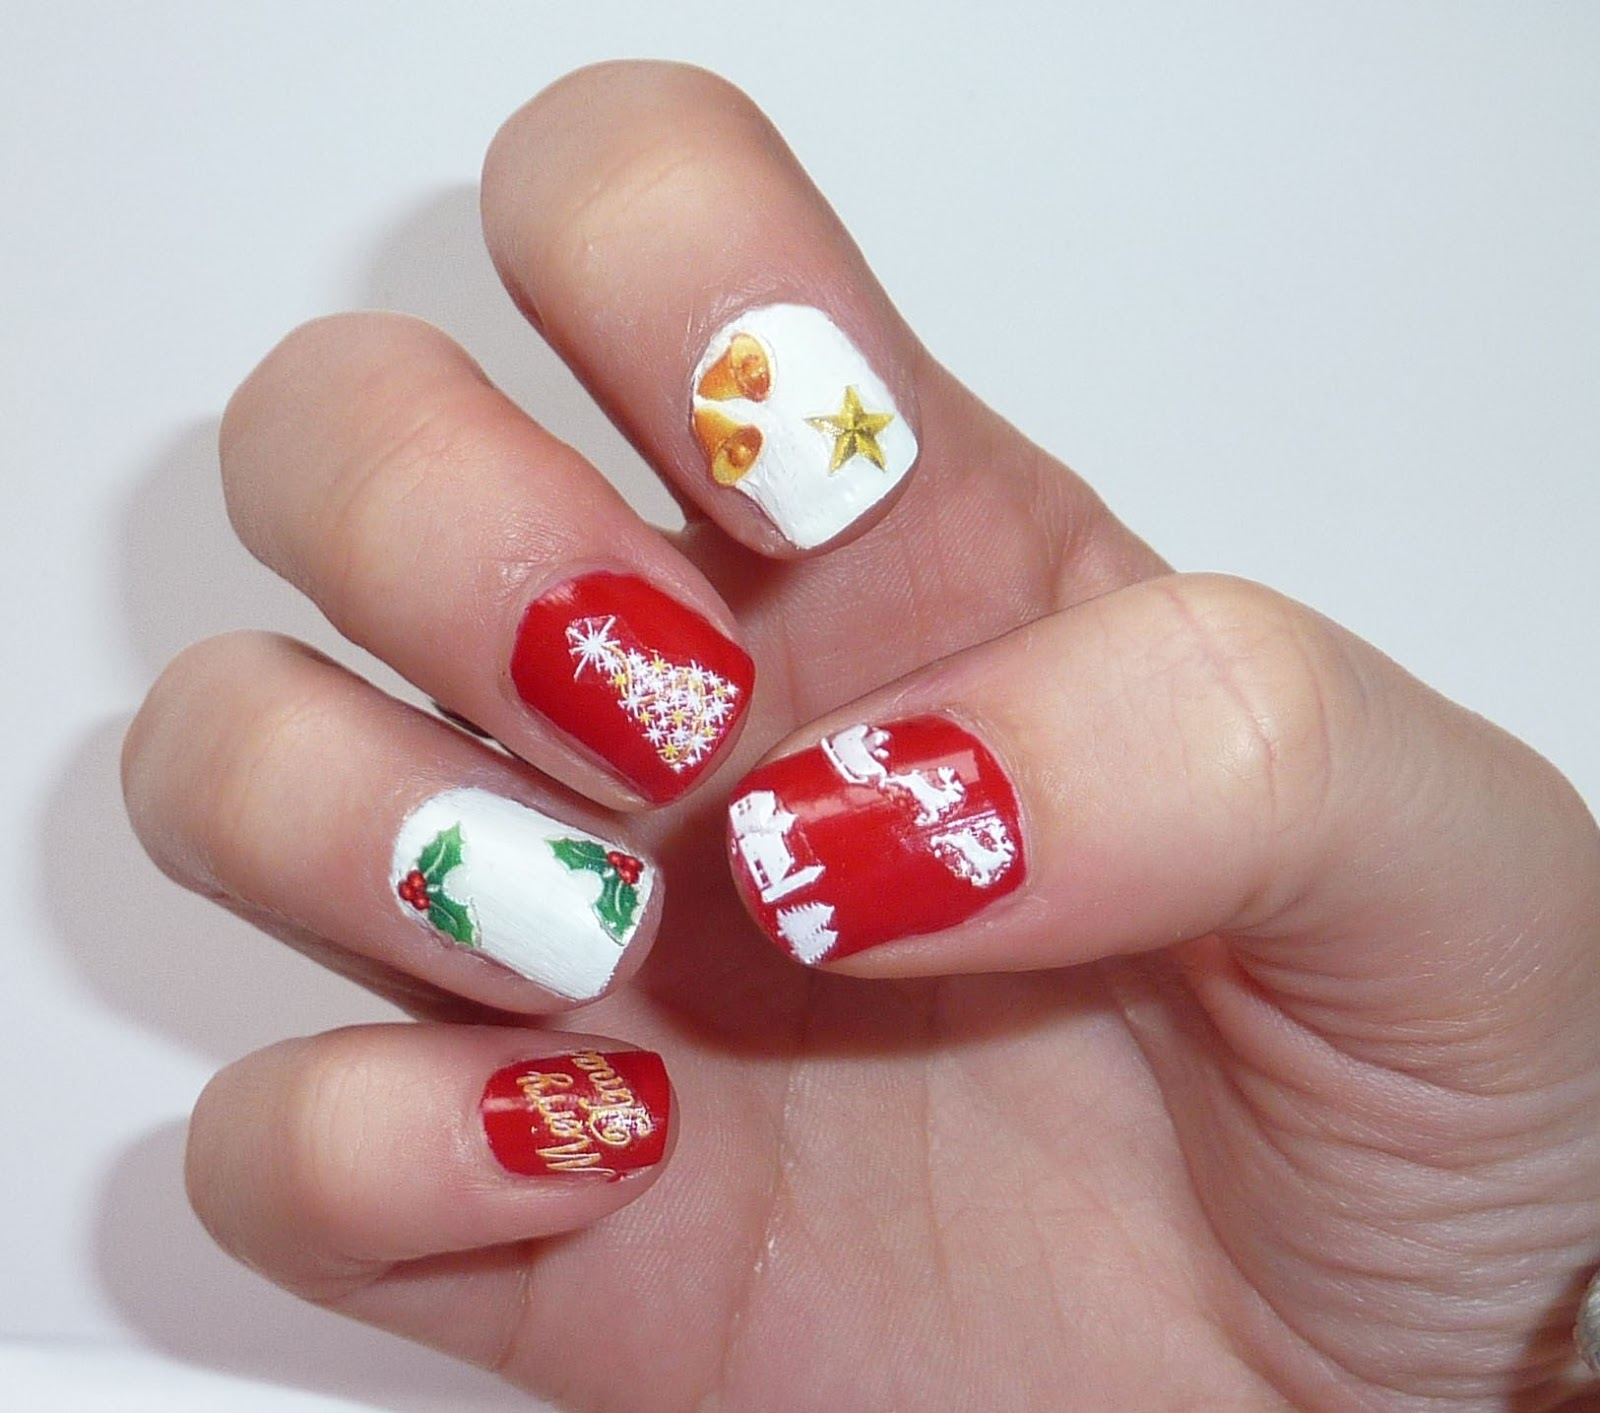 Sophie Jenner Nails Christmas Nail Art